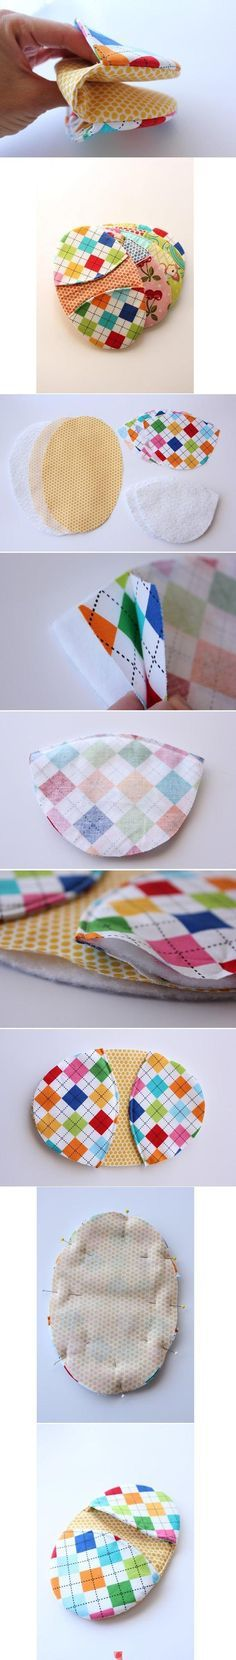 Trendy sewing crafts for christmas pot holders ideas Sewing Hacks, Sewing Tutorials, Sewing Patterns, Free Tutorials, Craft Tutorials, Fabric Crafts, Sewing Crafts, Sewing Projects, Diy Projects